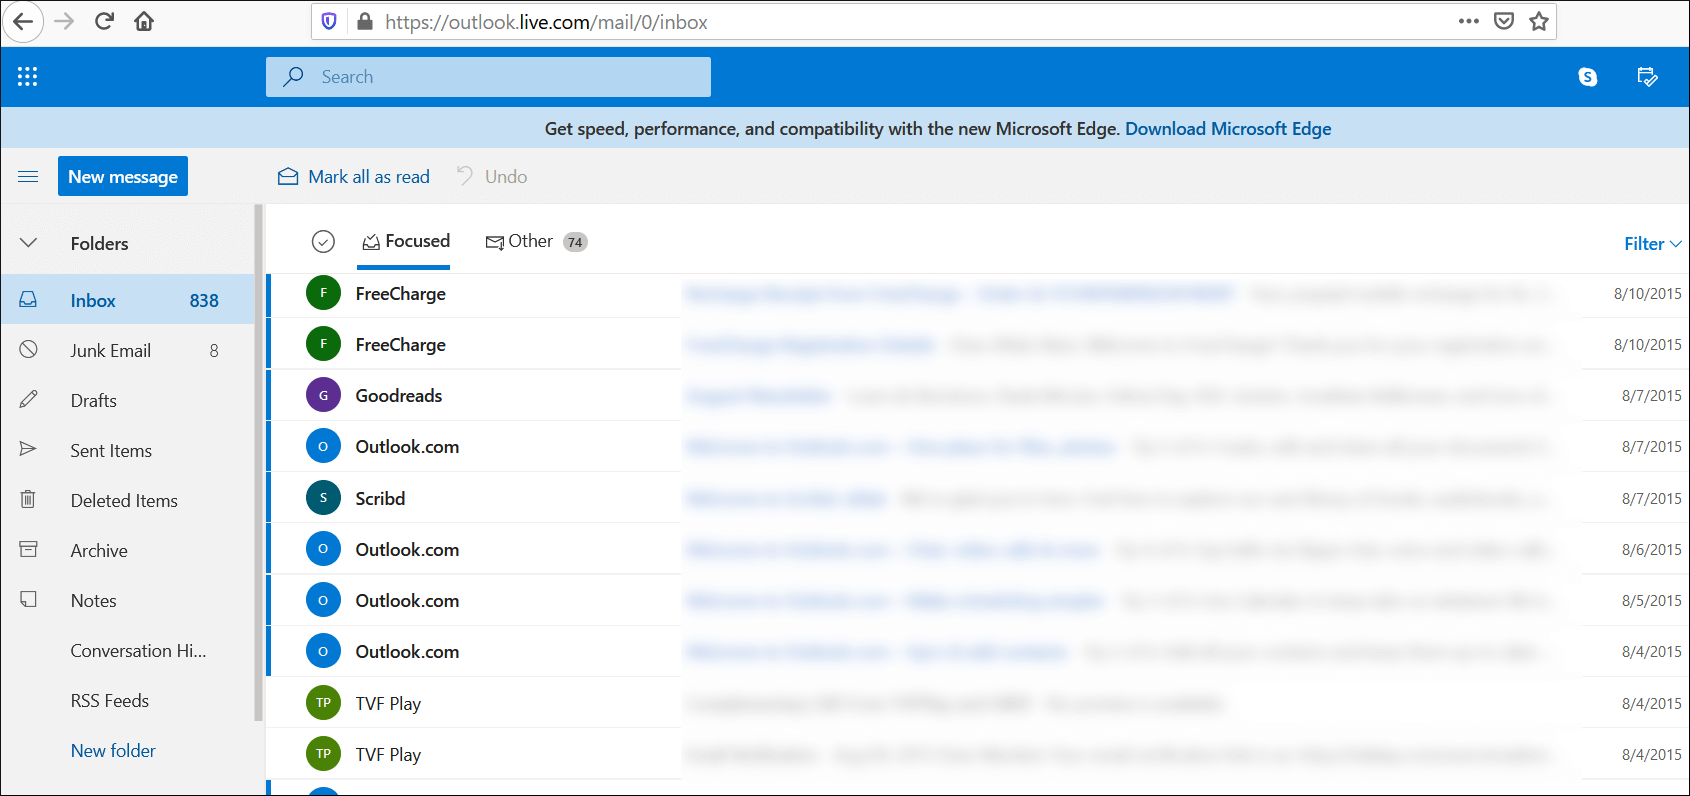 Your accounts are present in the web version of Outlook